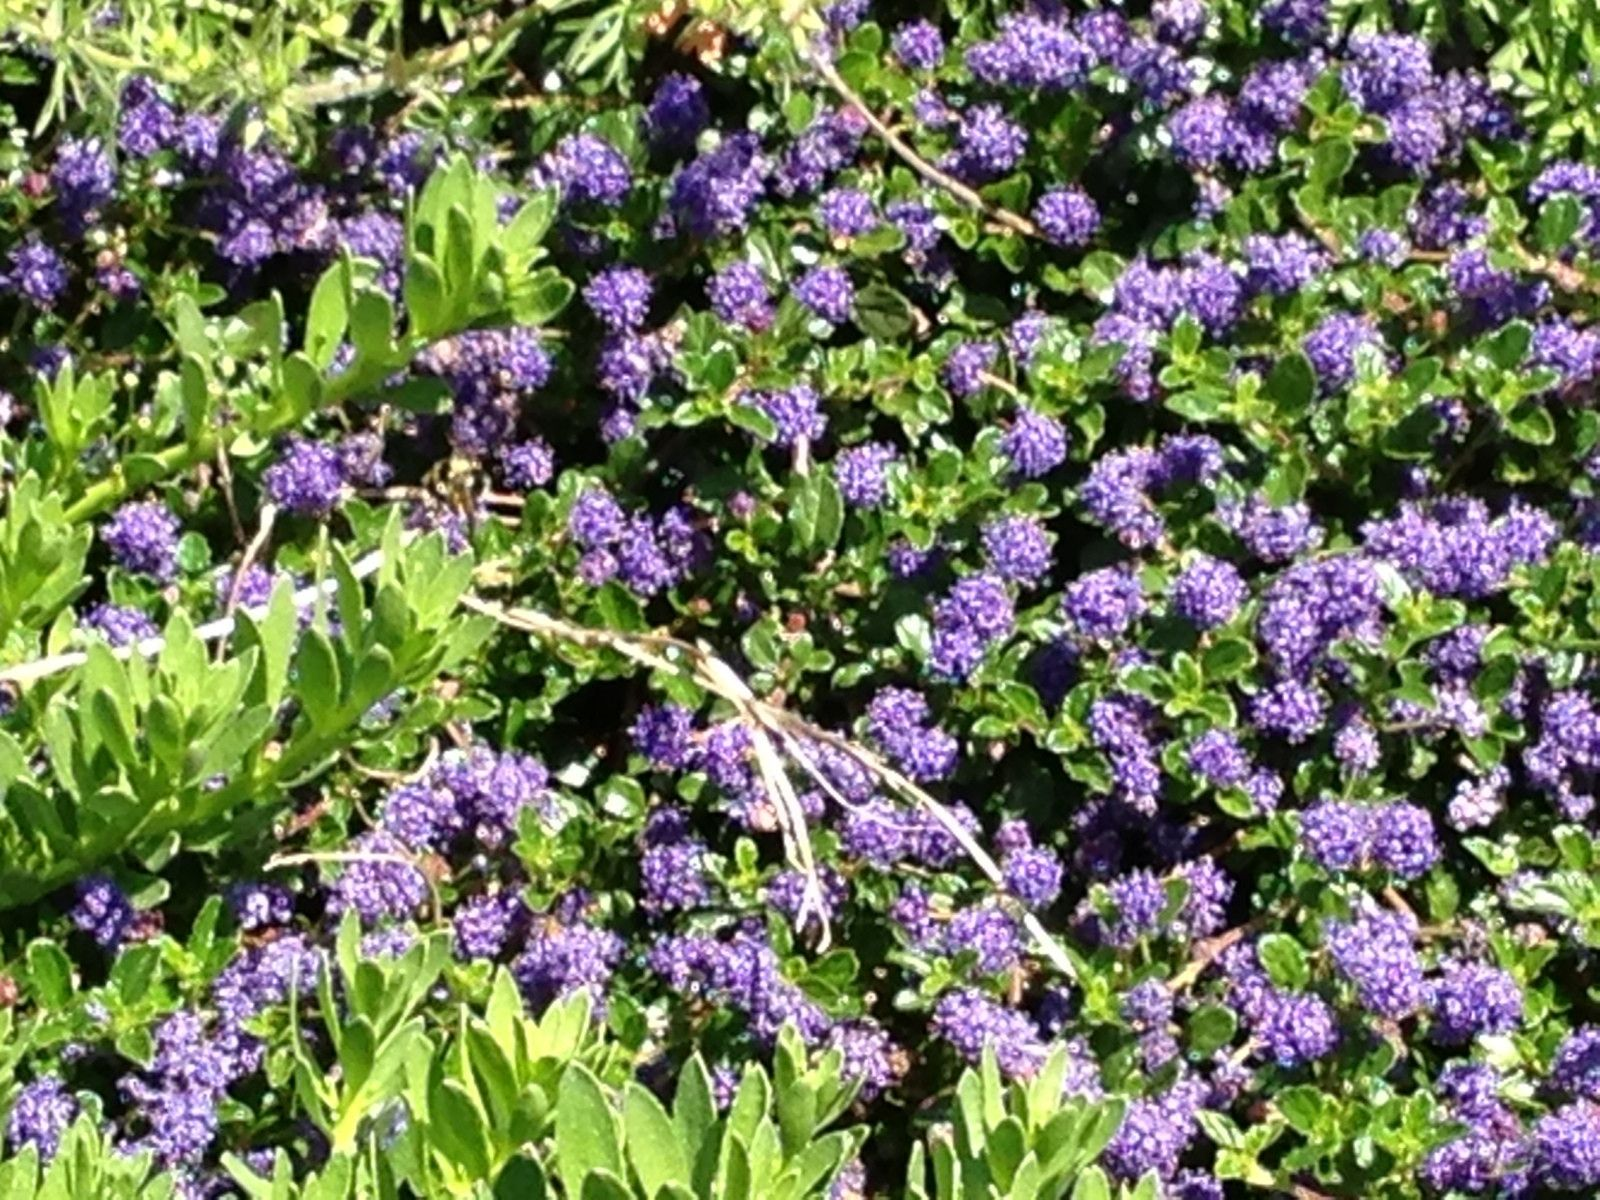 Purple Leaf Plant Identification Make Sure To Visit Gardenanswers And Our Free